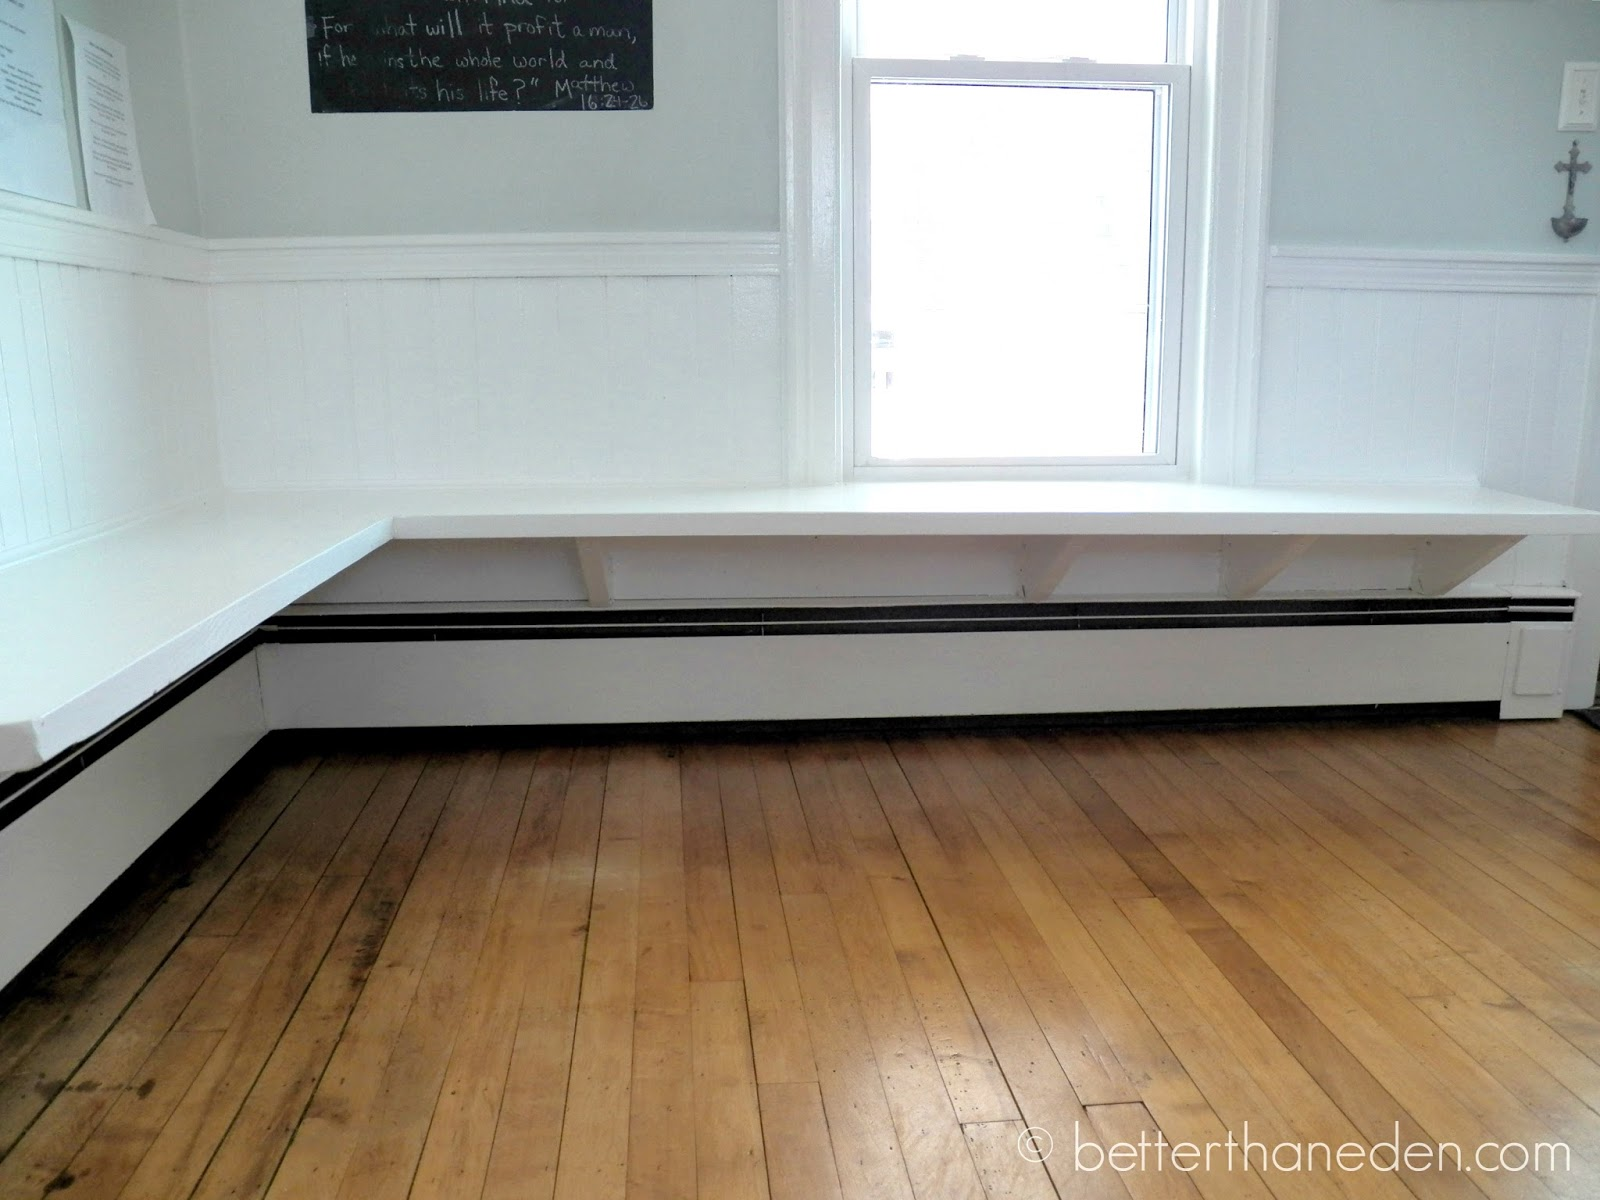 The floating built in kitchen bench mary haseltine better than eden - Building a kitchen bench ...